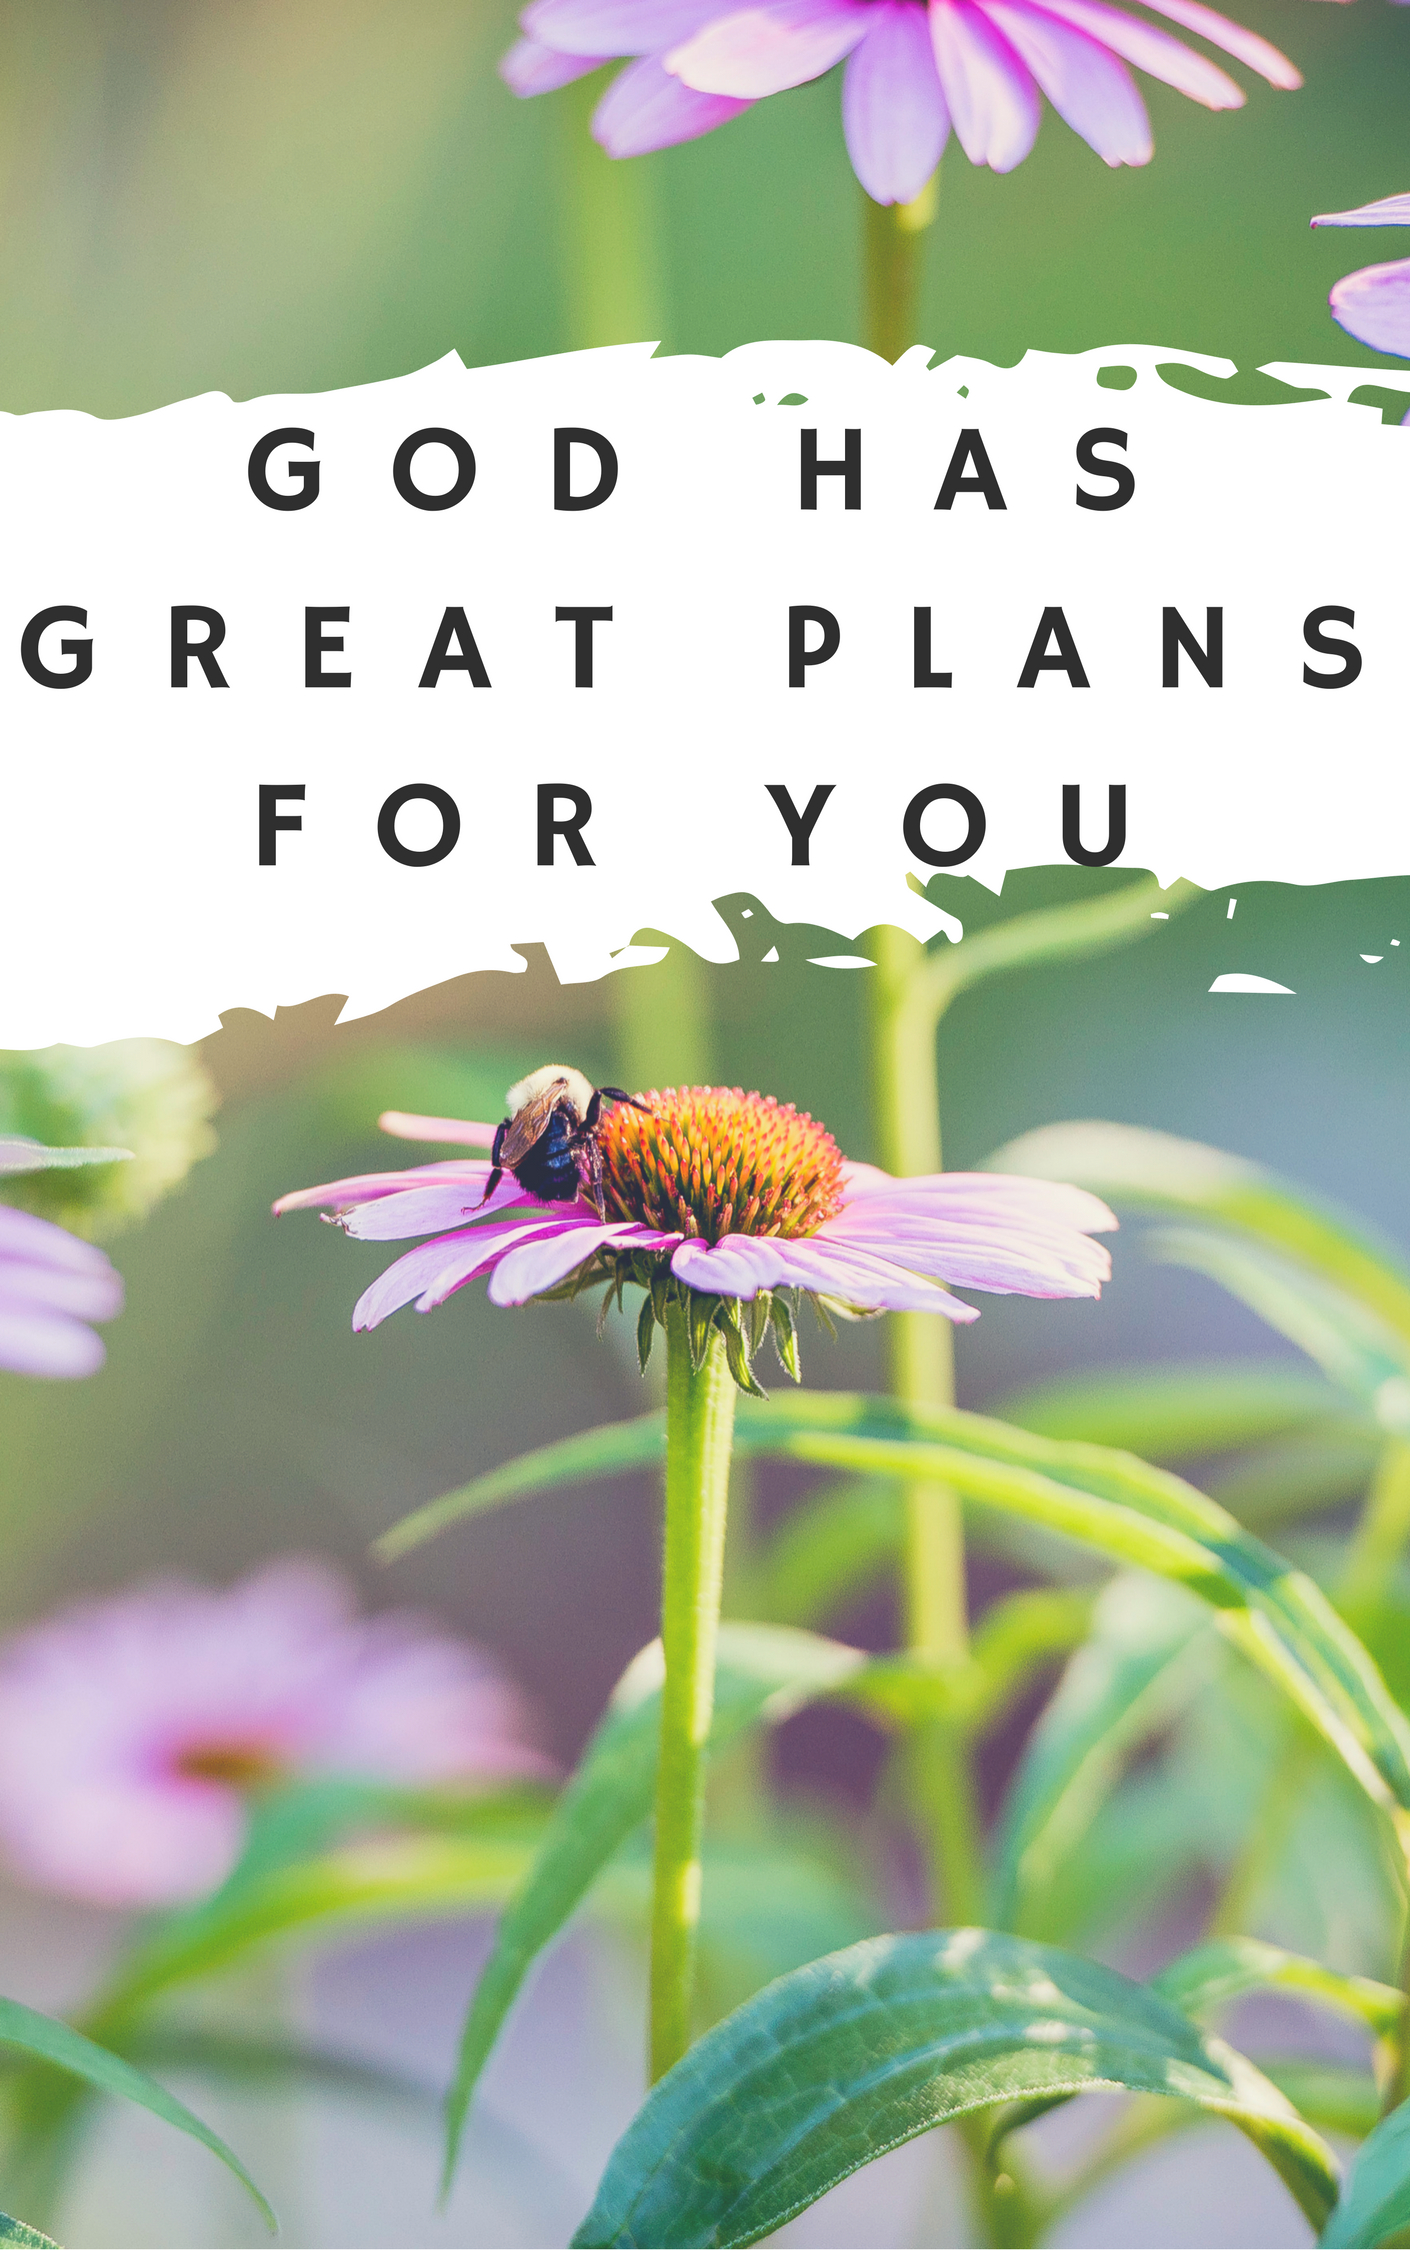 Free Printable Christian Birthday Card With Scripture | Christian - Free Printable Christian Birthday Cards For Kids